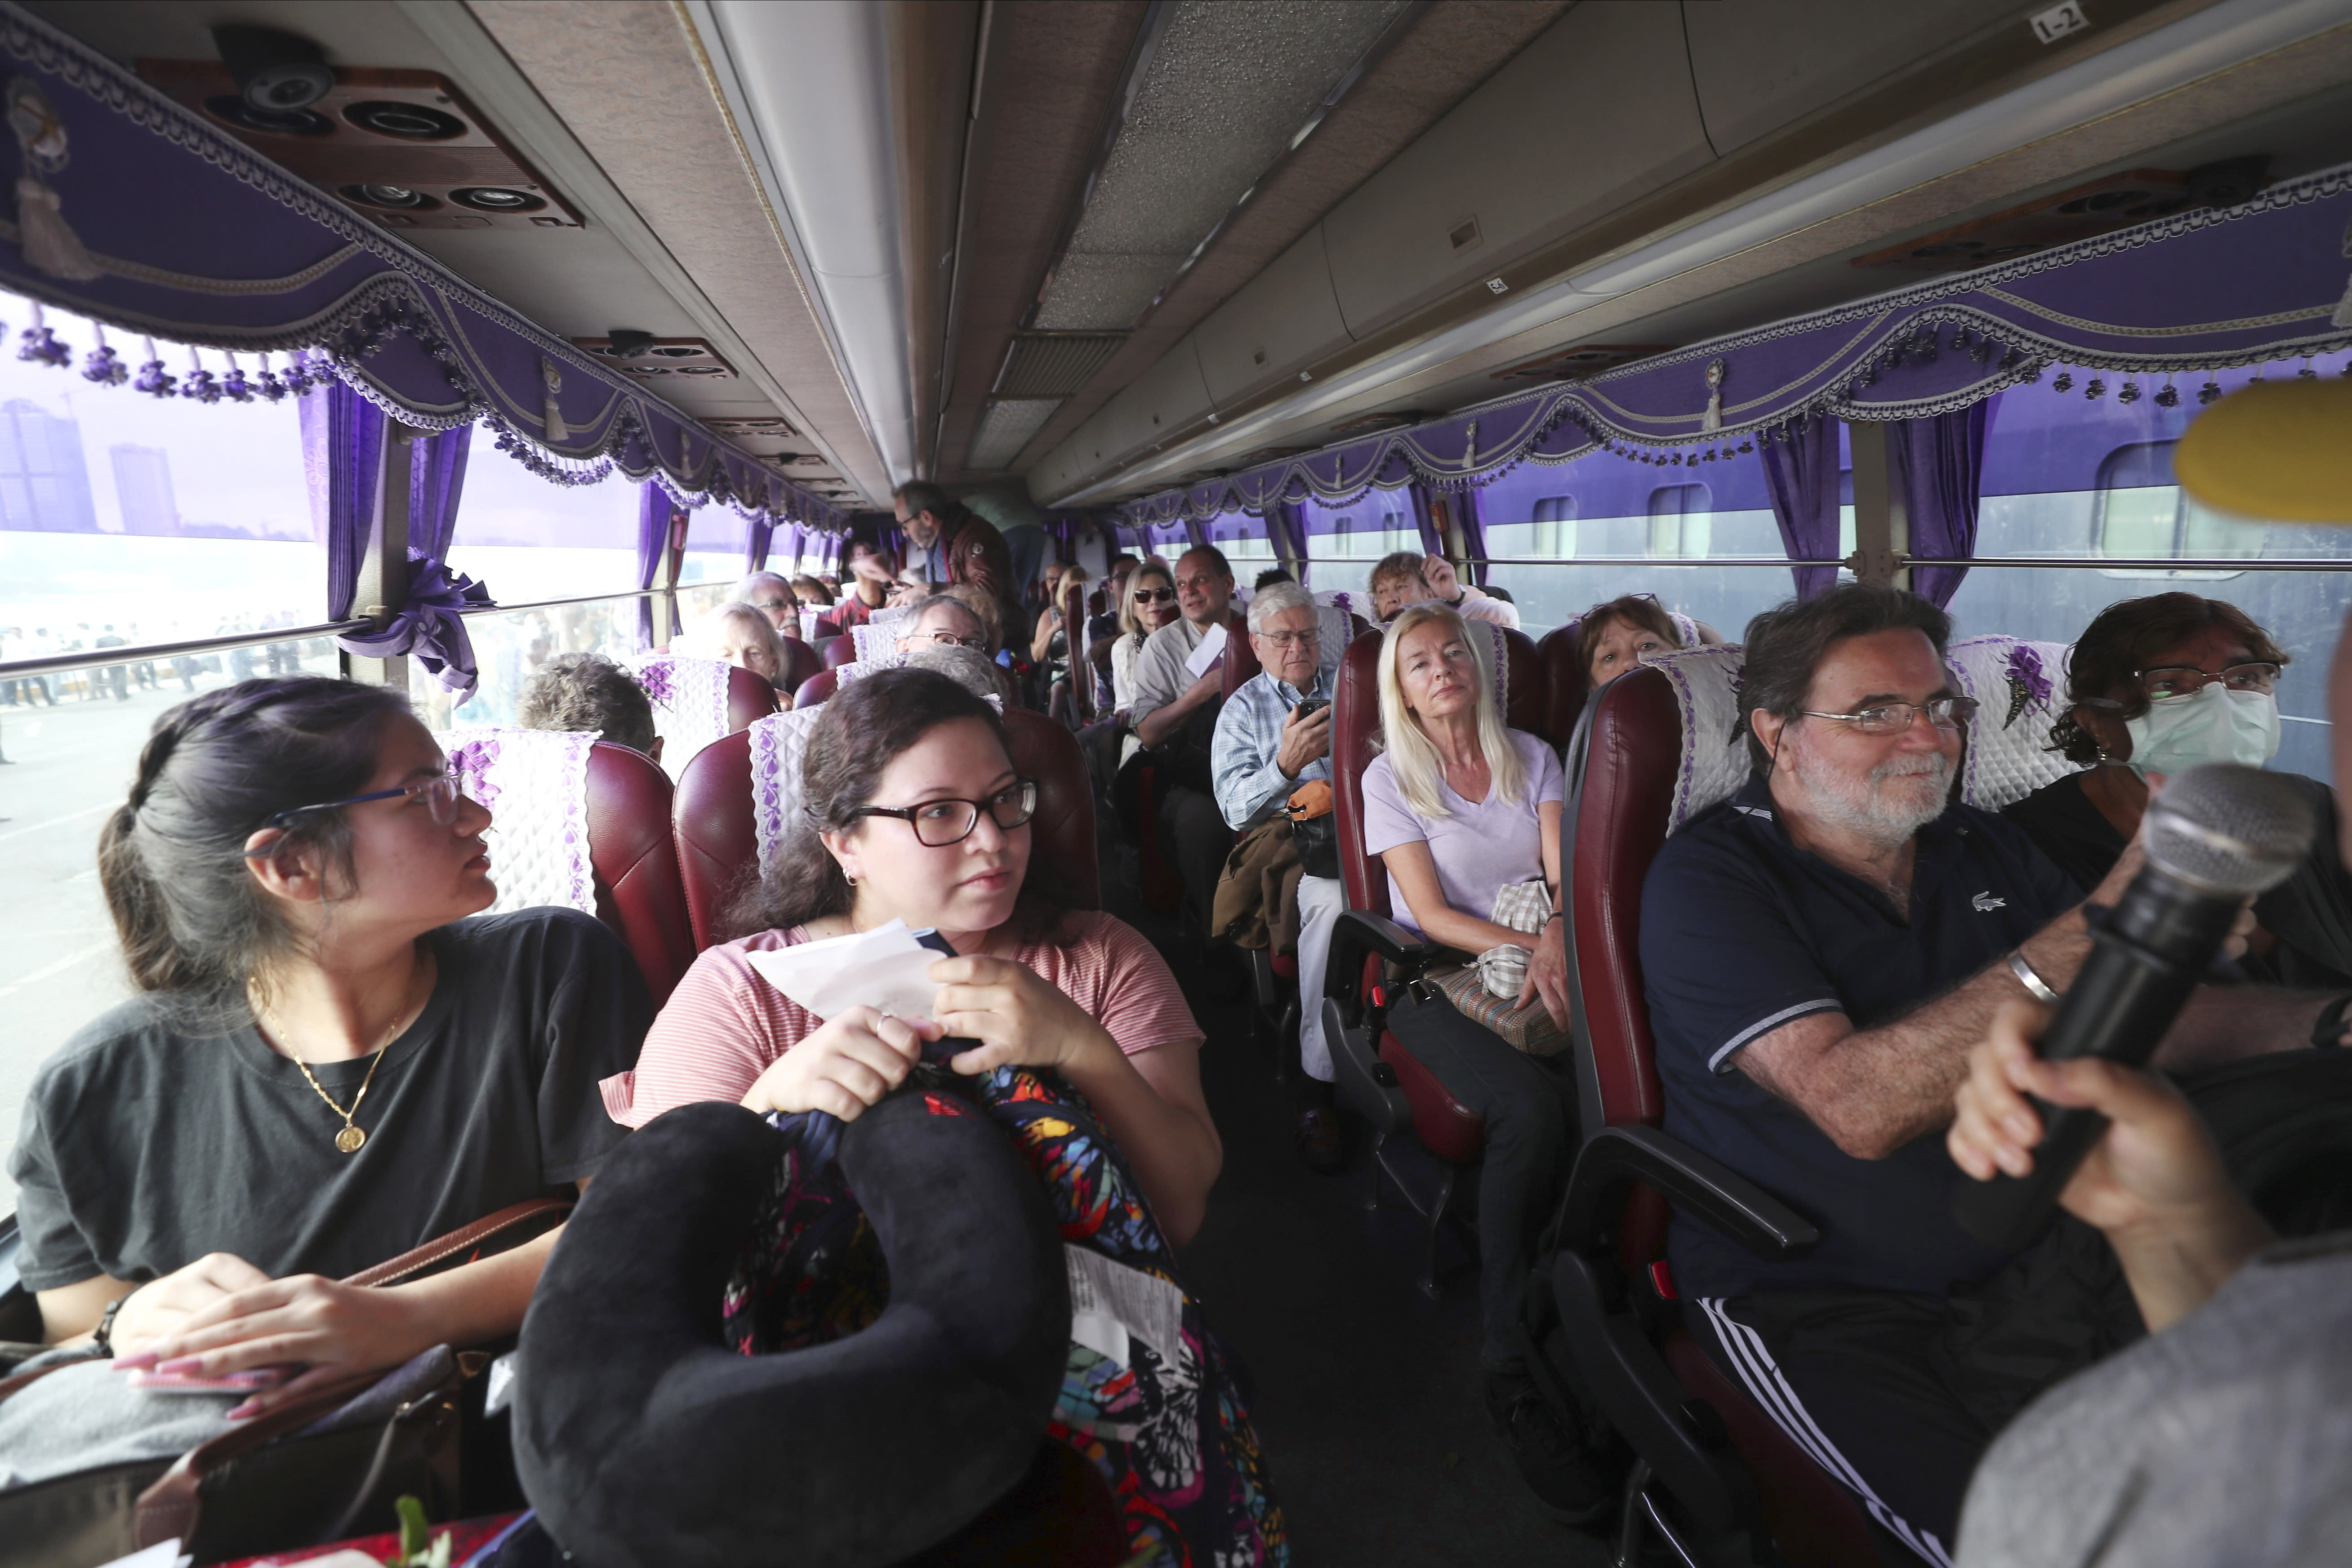 Passengers of the MS Westerdam sit in a busa after they disembarked from the cruise ship, owned by Holland America Line, at the port of Sihanoukville, Cambodia, Friday, Feb. 14, 2020. Hundreds of cruise ship passengers long stranded at sea by virus fears cheered as they finally disembarked Friday and were welcomed to Cambodia. (AP Photo/Heng Sinith)